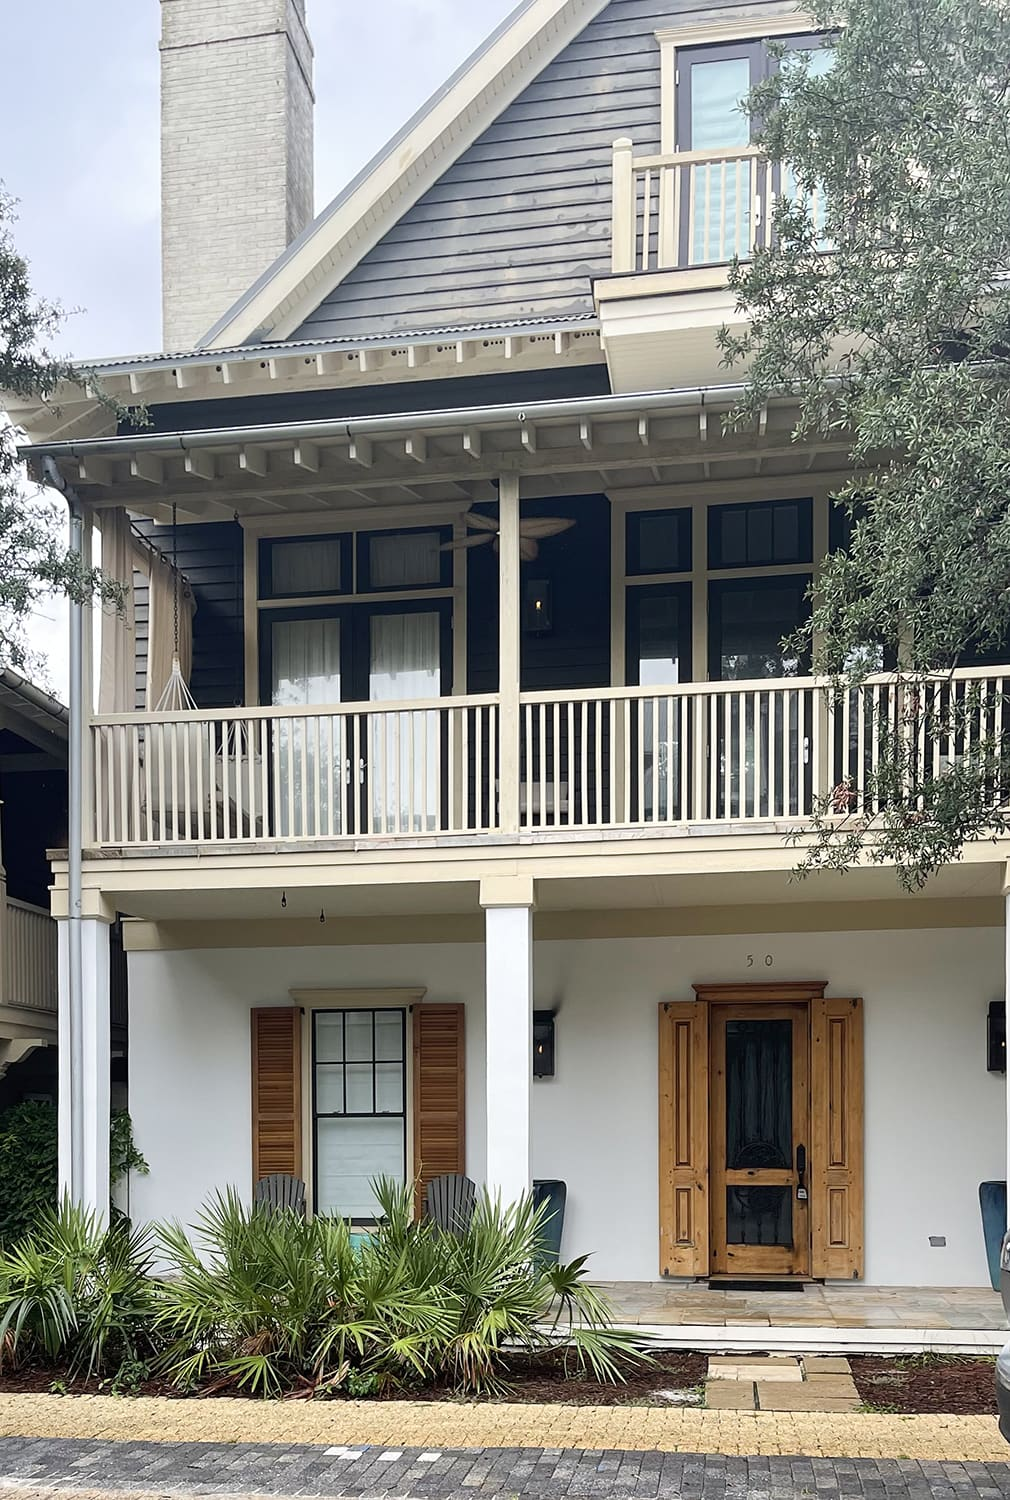 rosemary beach home with antique shutters